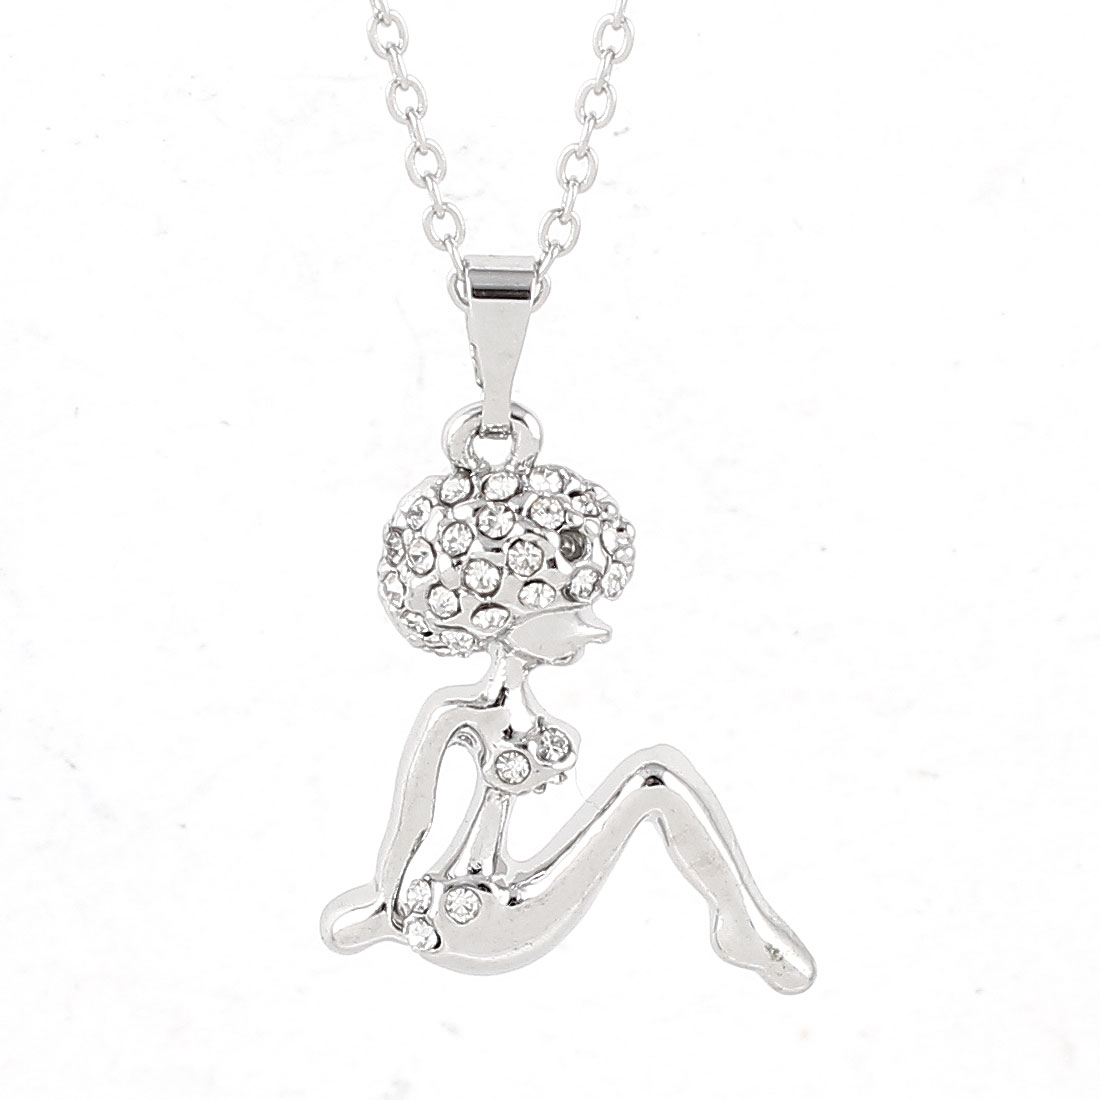 Lady Silver Tone Chain Link Sex Lady Pendant Rhinestone Detailing Necklace